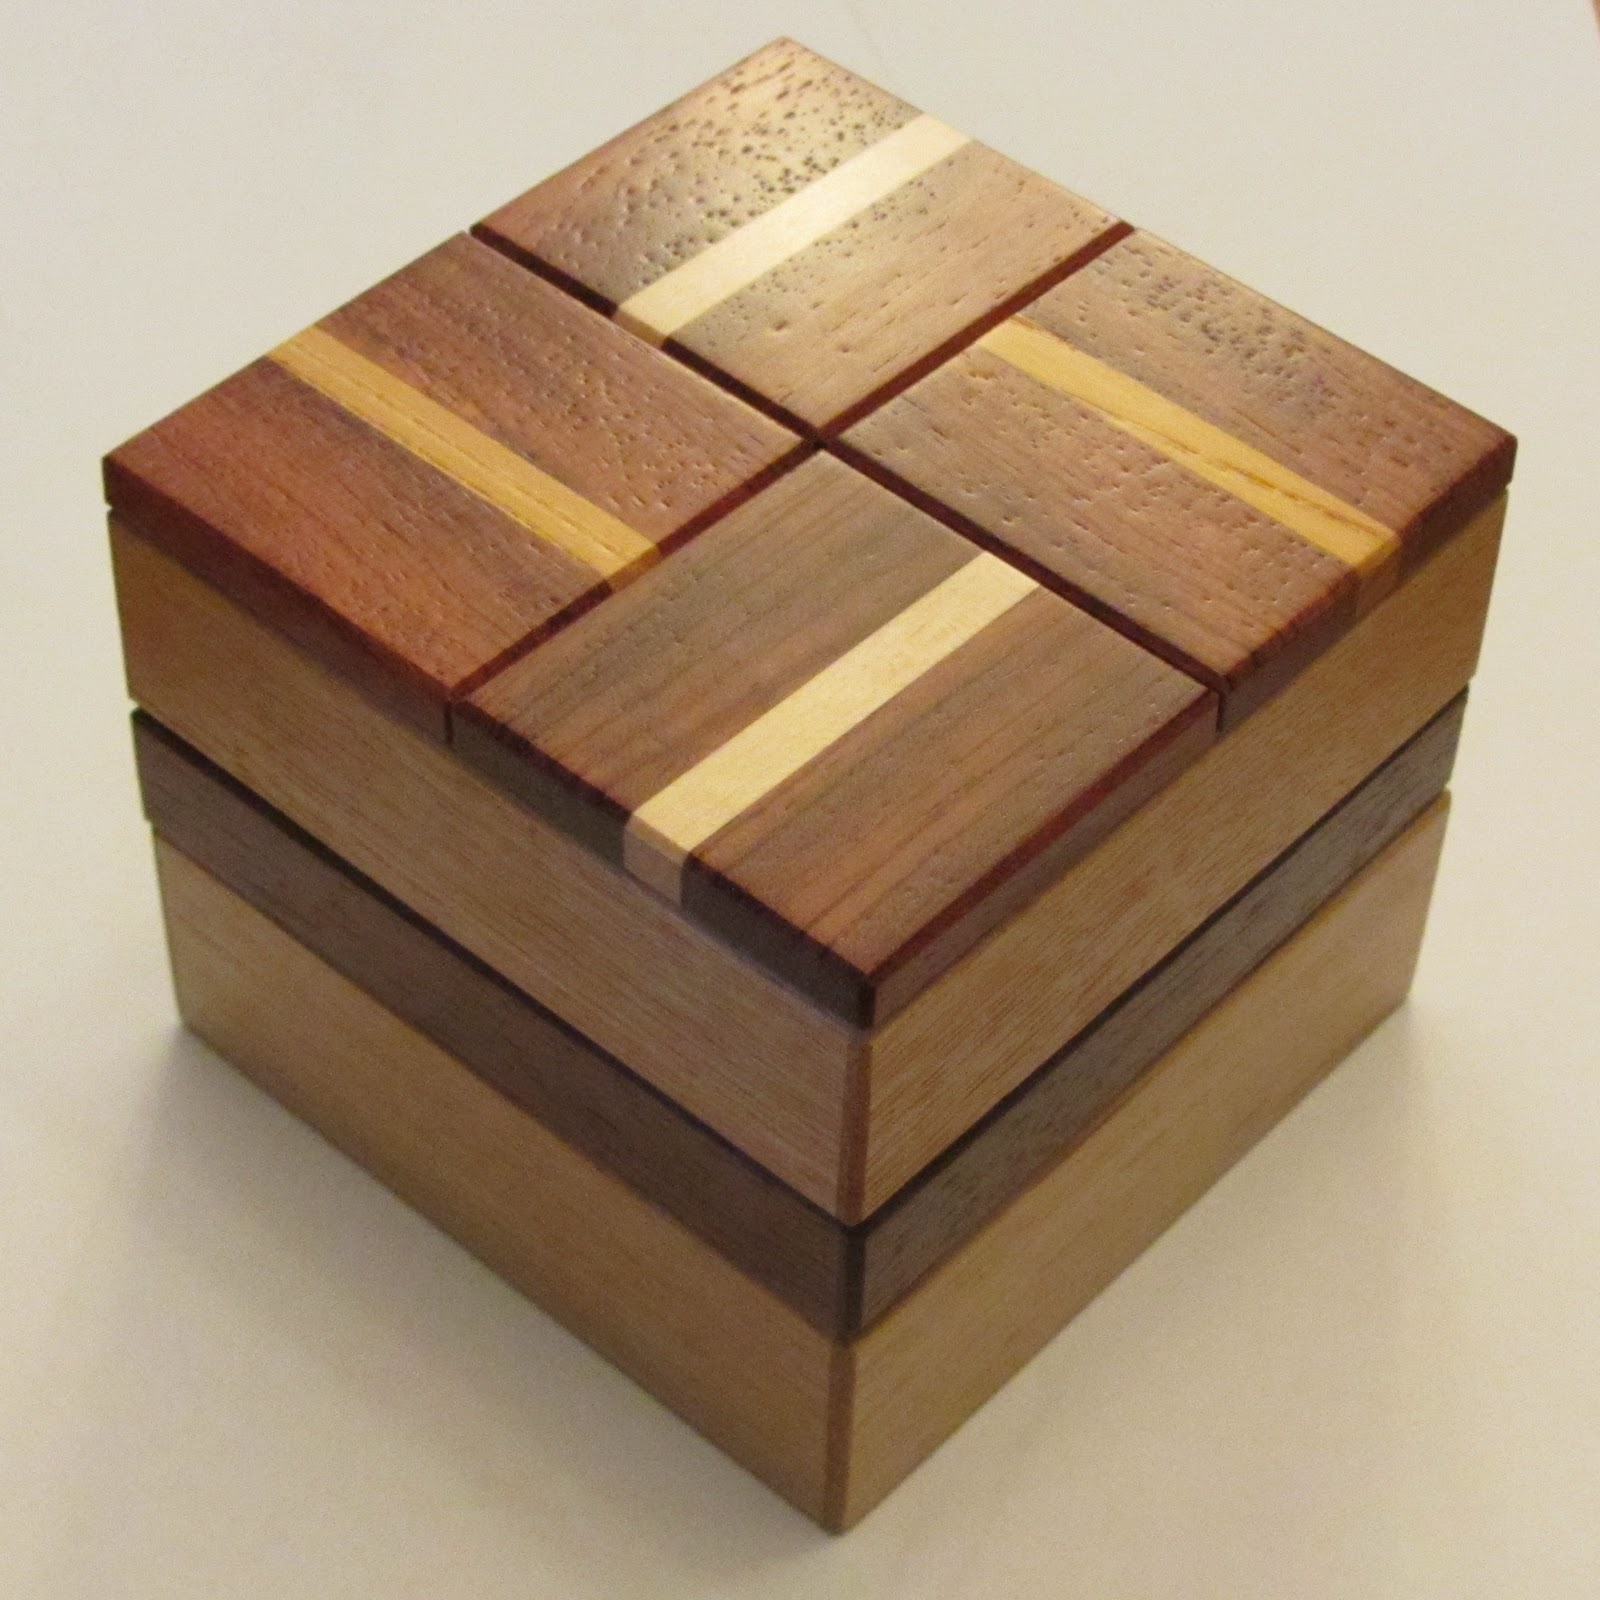 Peaks and Points: Japanese Puzzle Boxes